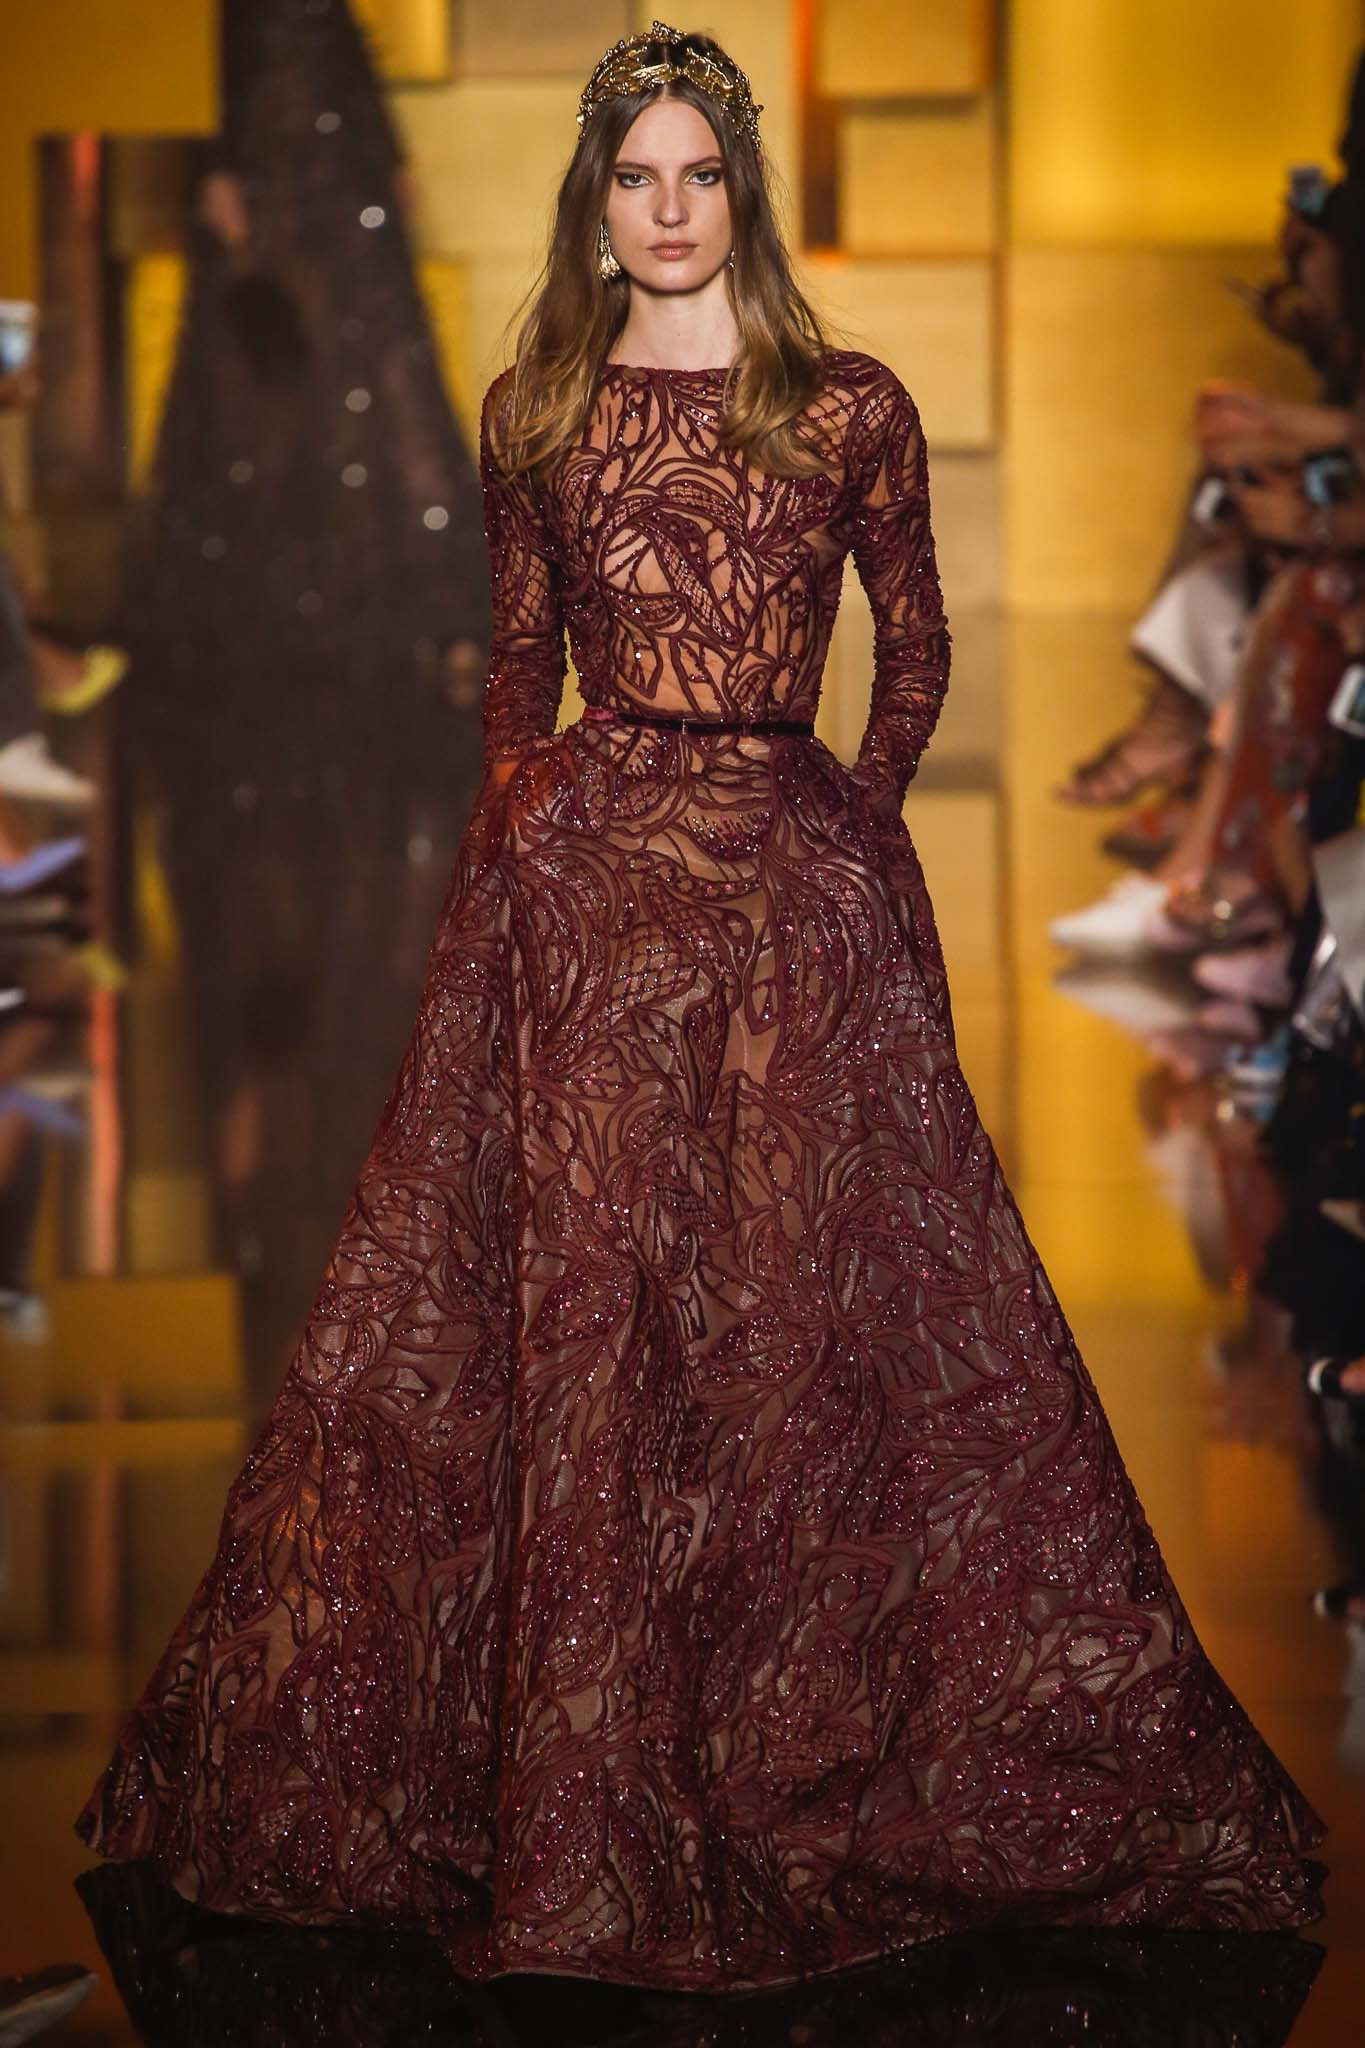 Elie Saab Fall 2015 Couture Collection - SANOOBAR UNSCRIPTED